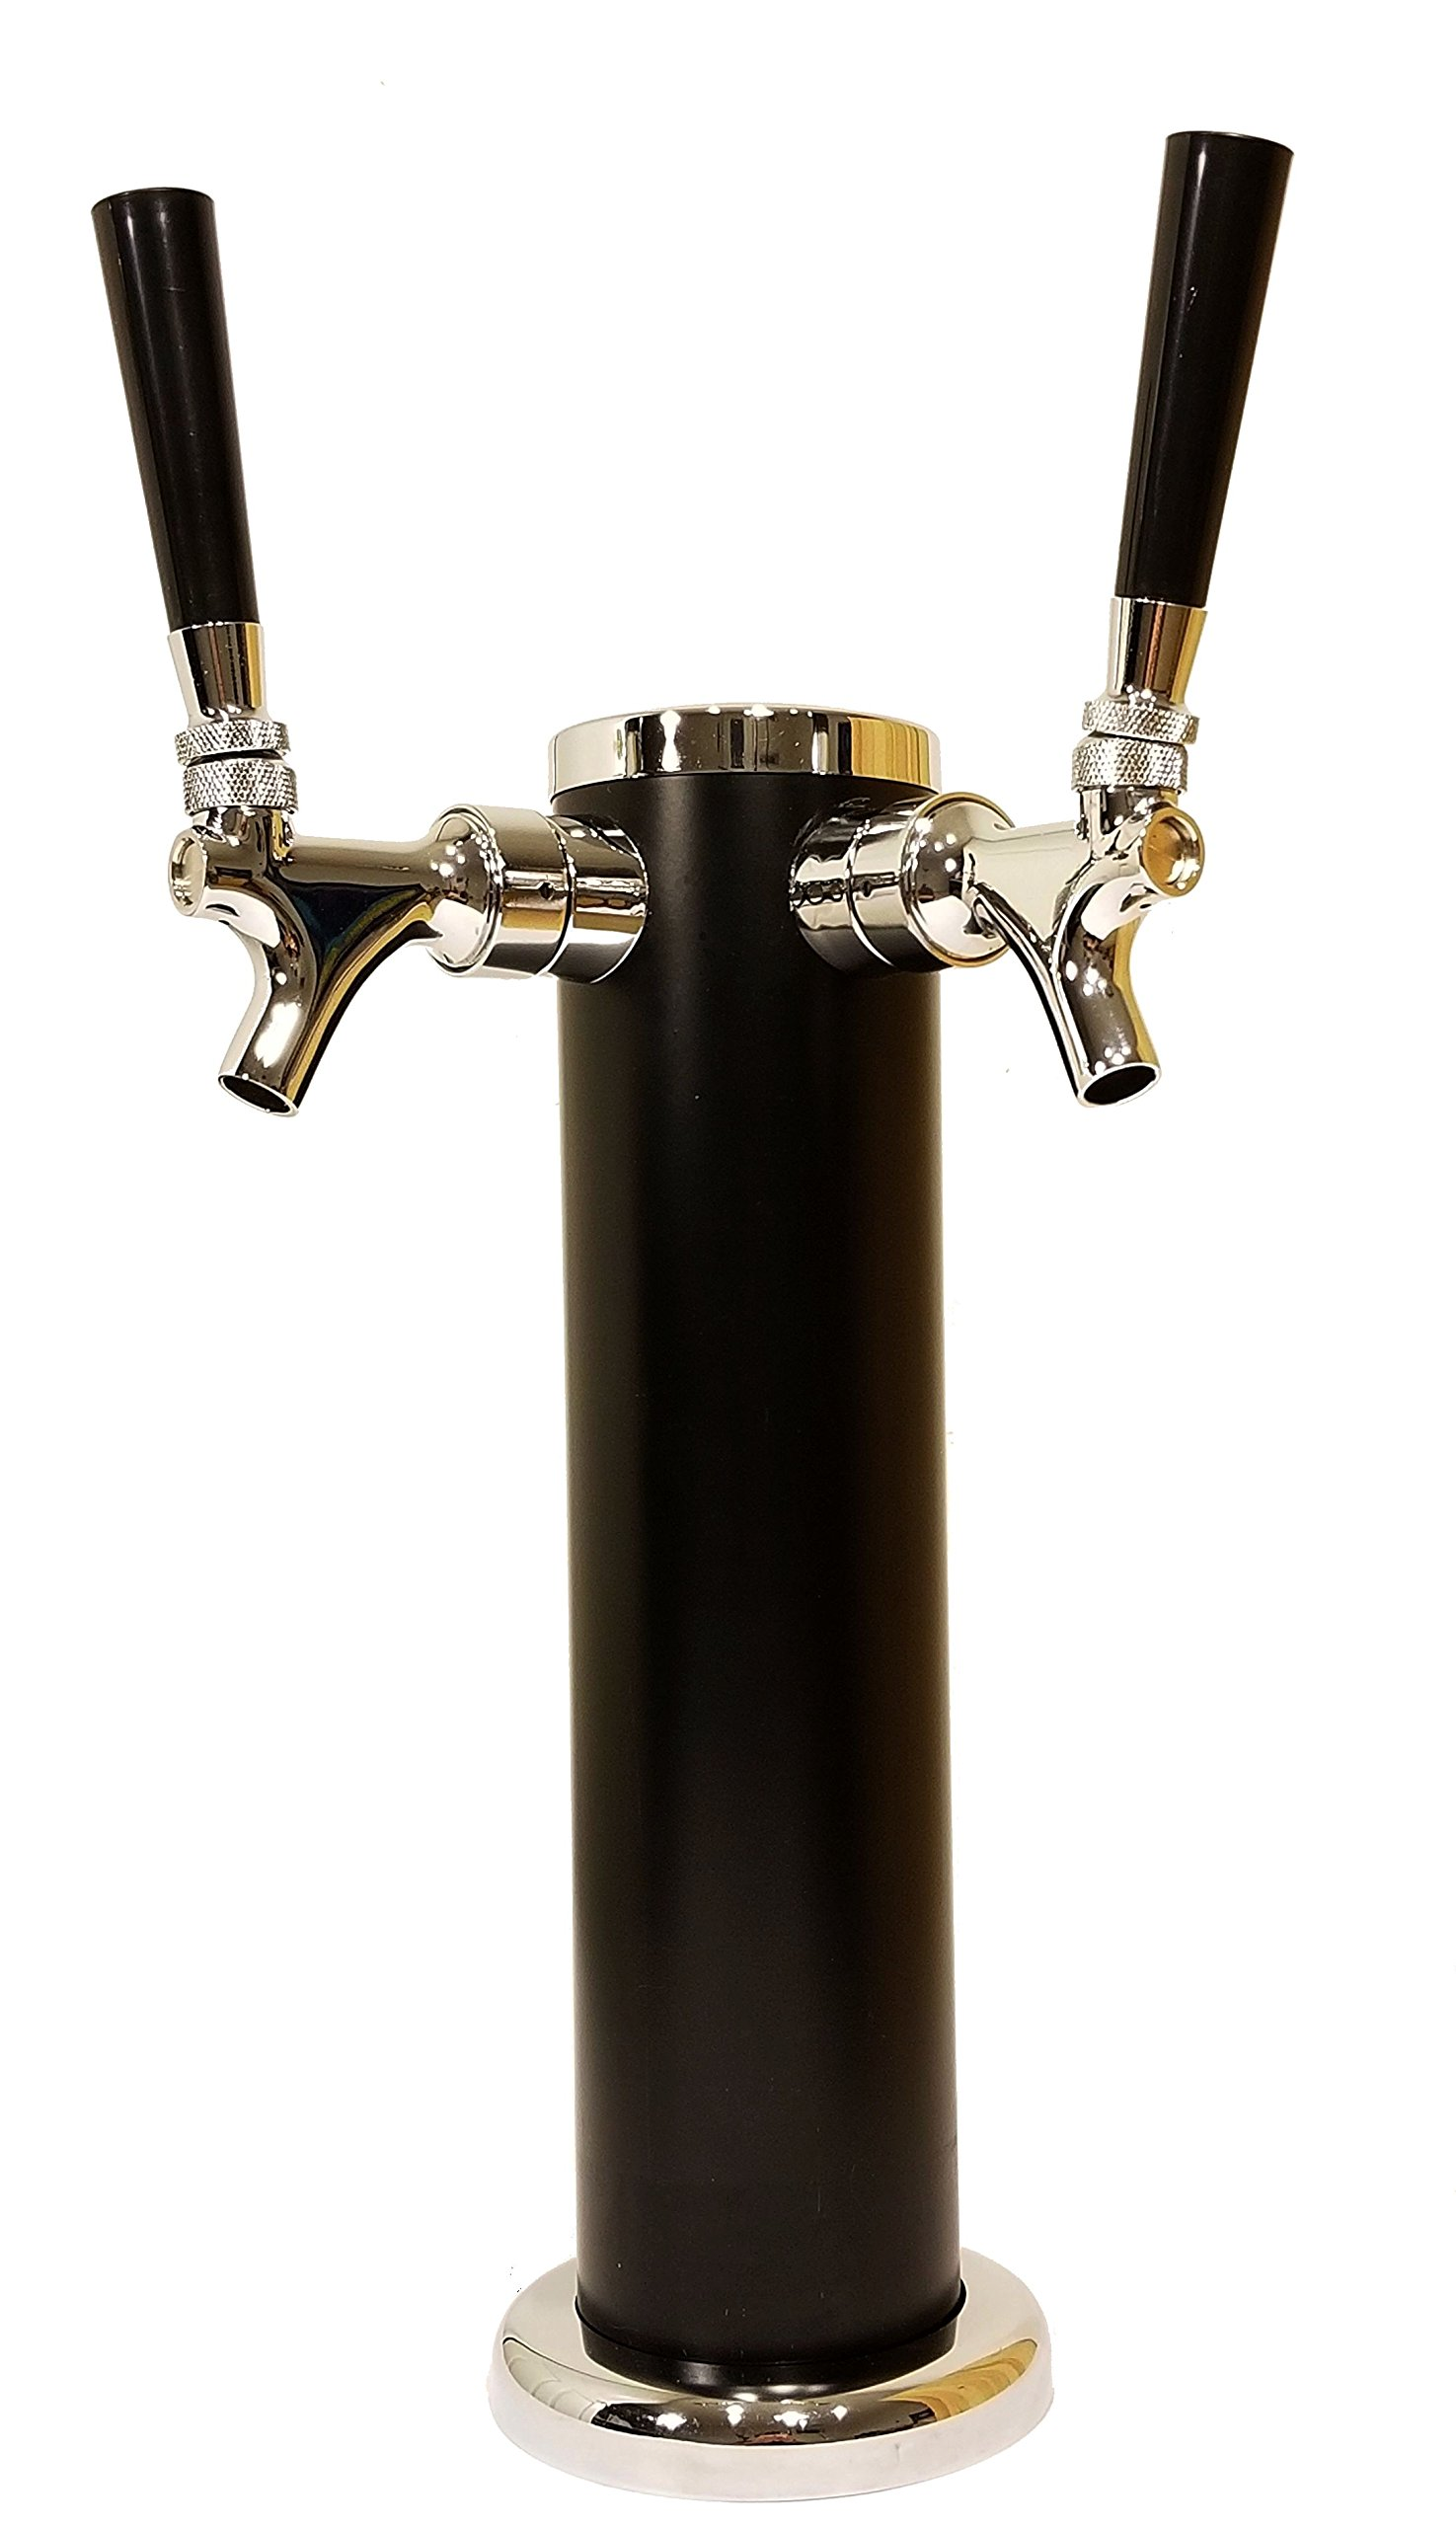 """DOUBLE TAP DRAFT BEER TOWER - 2-TAP BEER COLUMN 13"""" HIGH 3"""" DIAMETER - STAINLESS STEEL BODY WITH UNIQUE BLACK SATIN FINISH - CHROME FINISH FAUCETS - BEERGON BT-1000"""